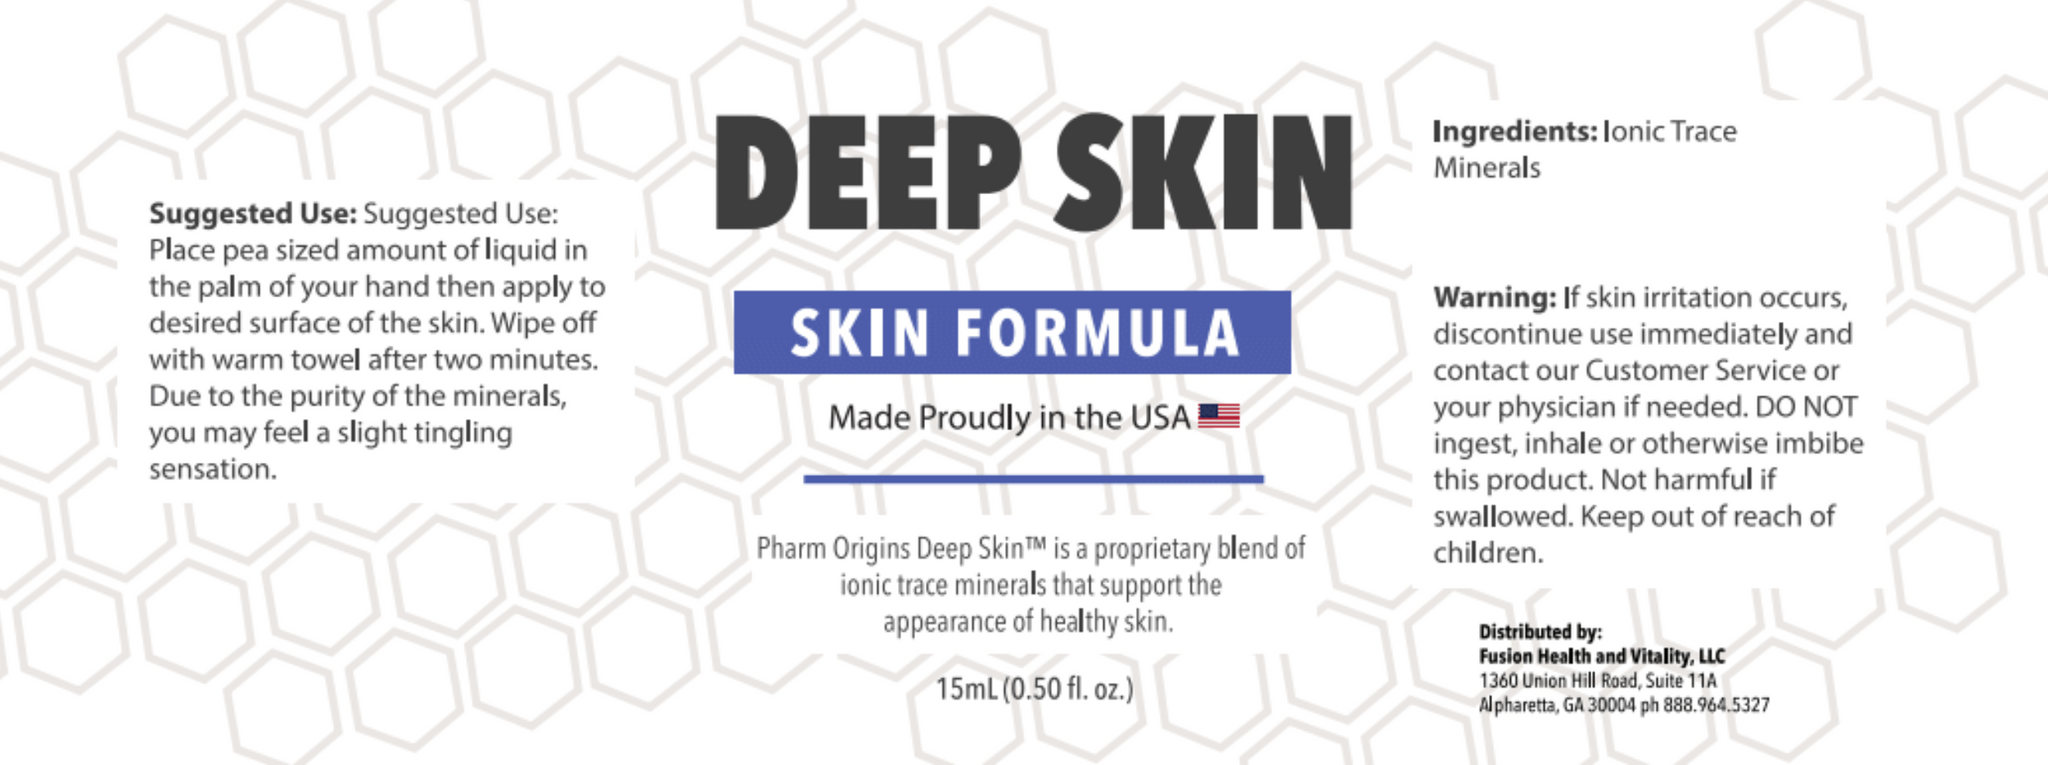 Pharm Origins Deep Skin™